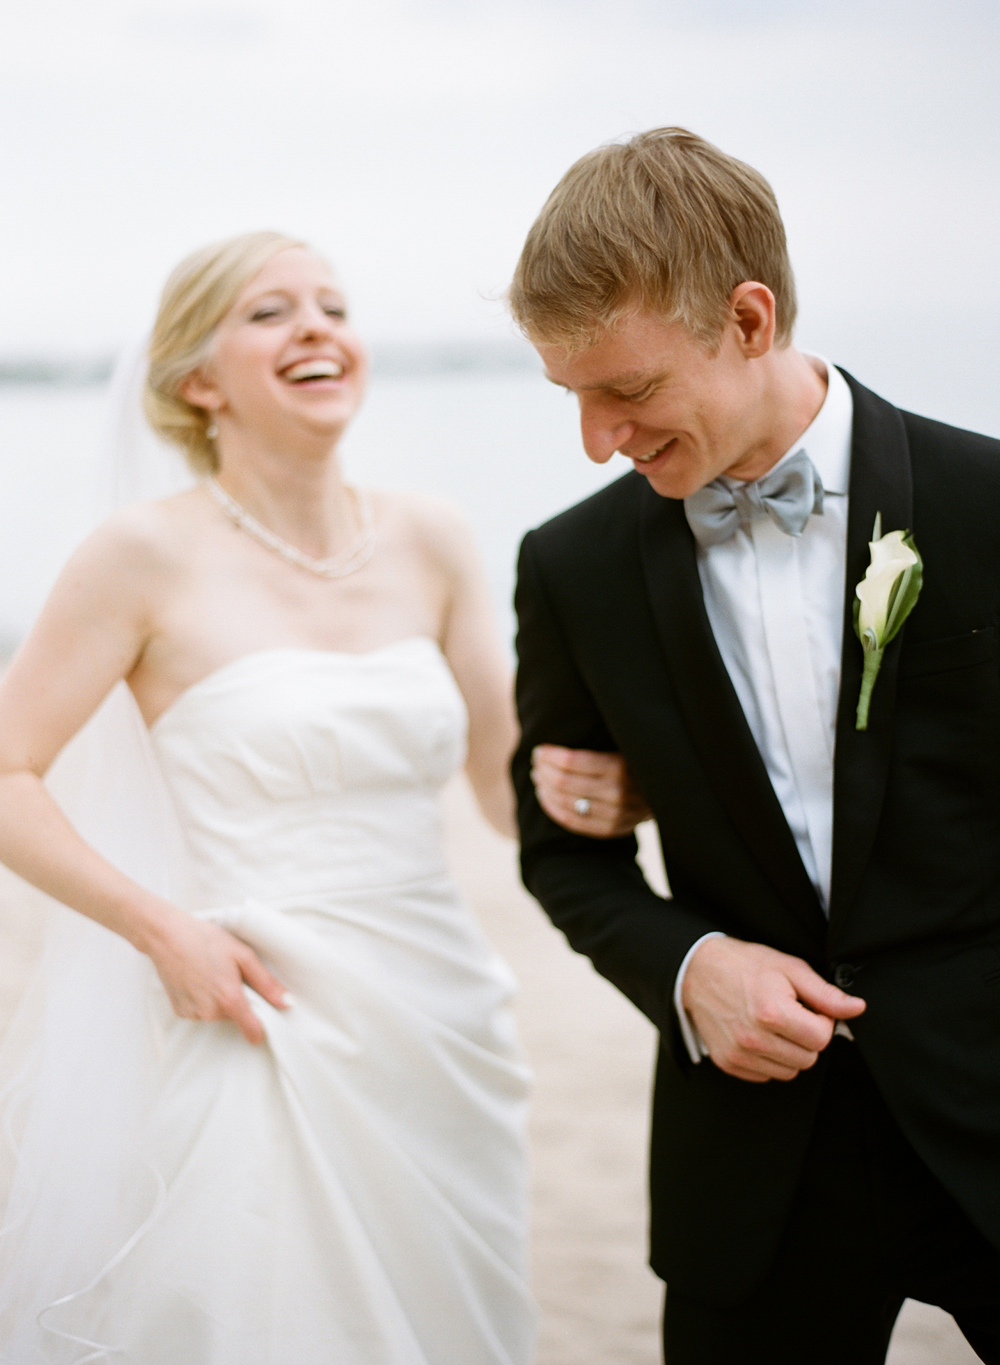 pritzlaff-milwaukee-wedding-photographer-41